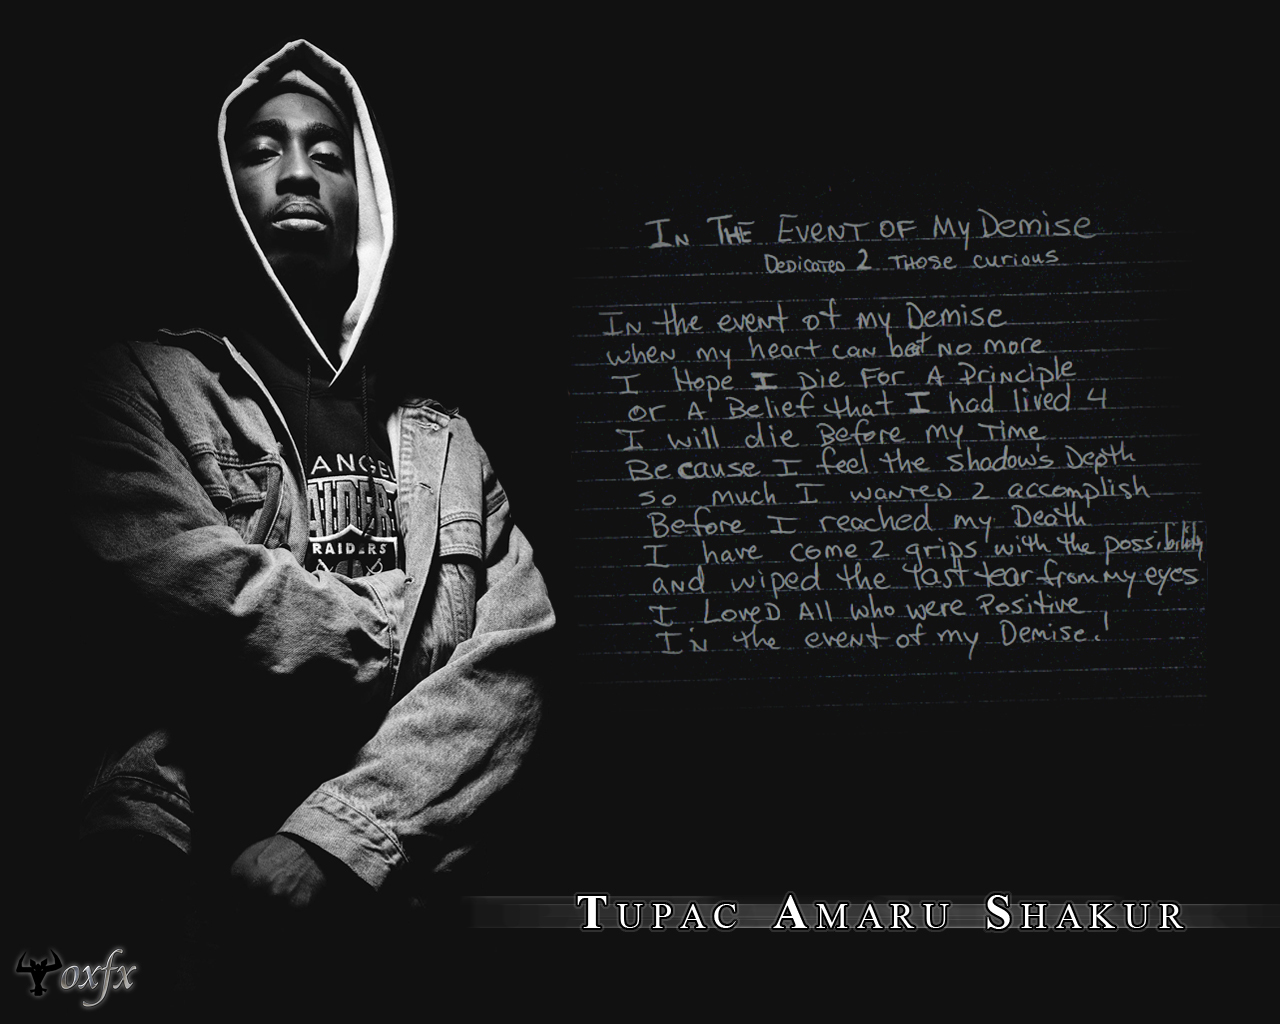 Tupac Shakur Quotes 2pac Quote Wallpaper 1280x1024